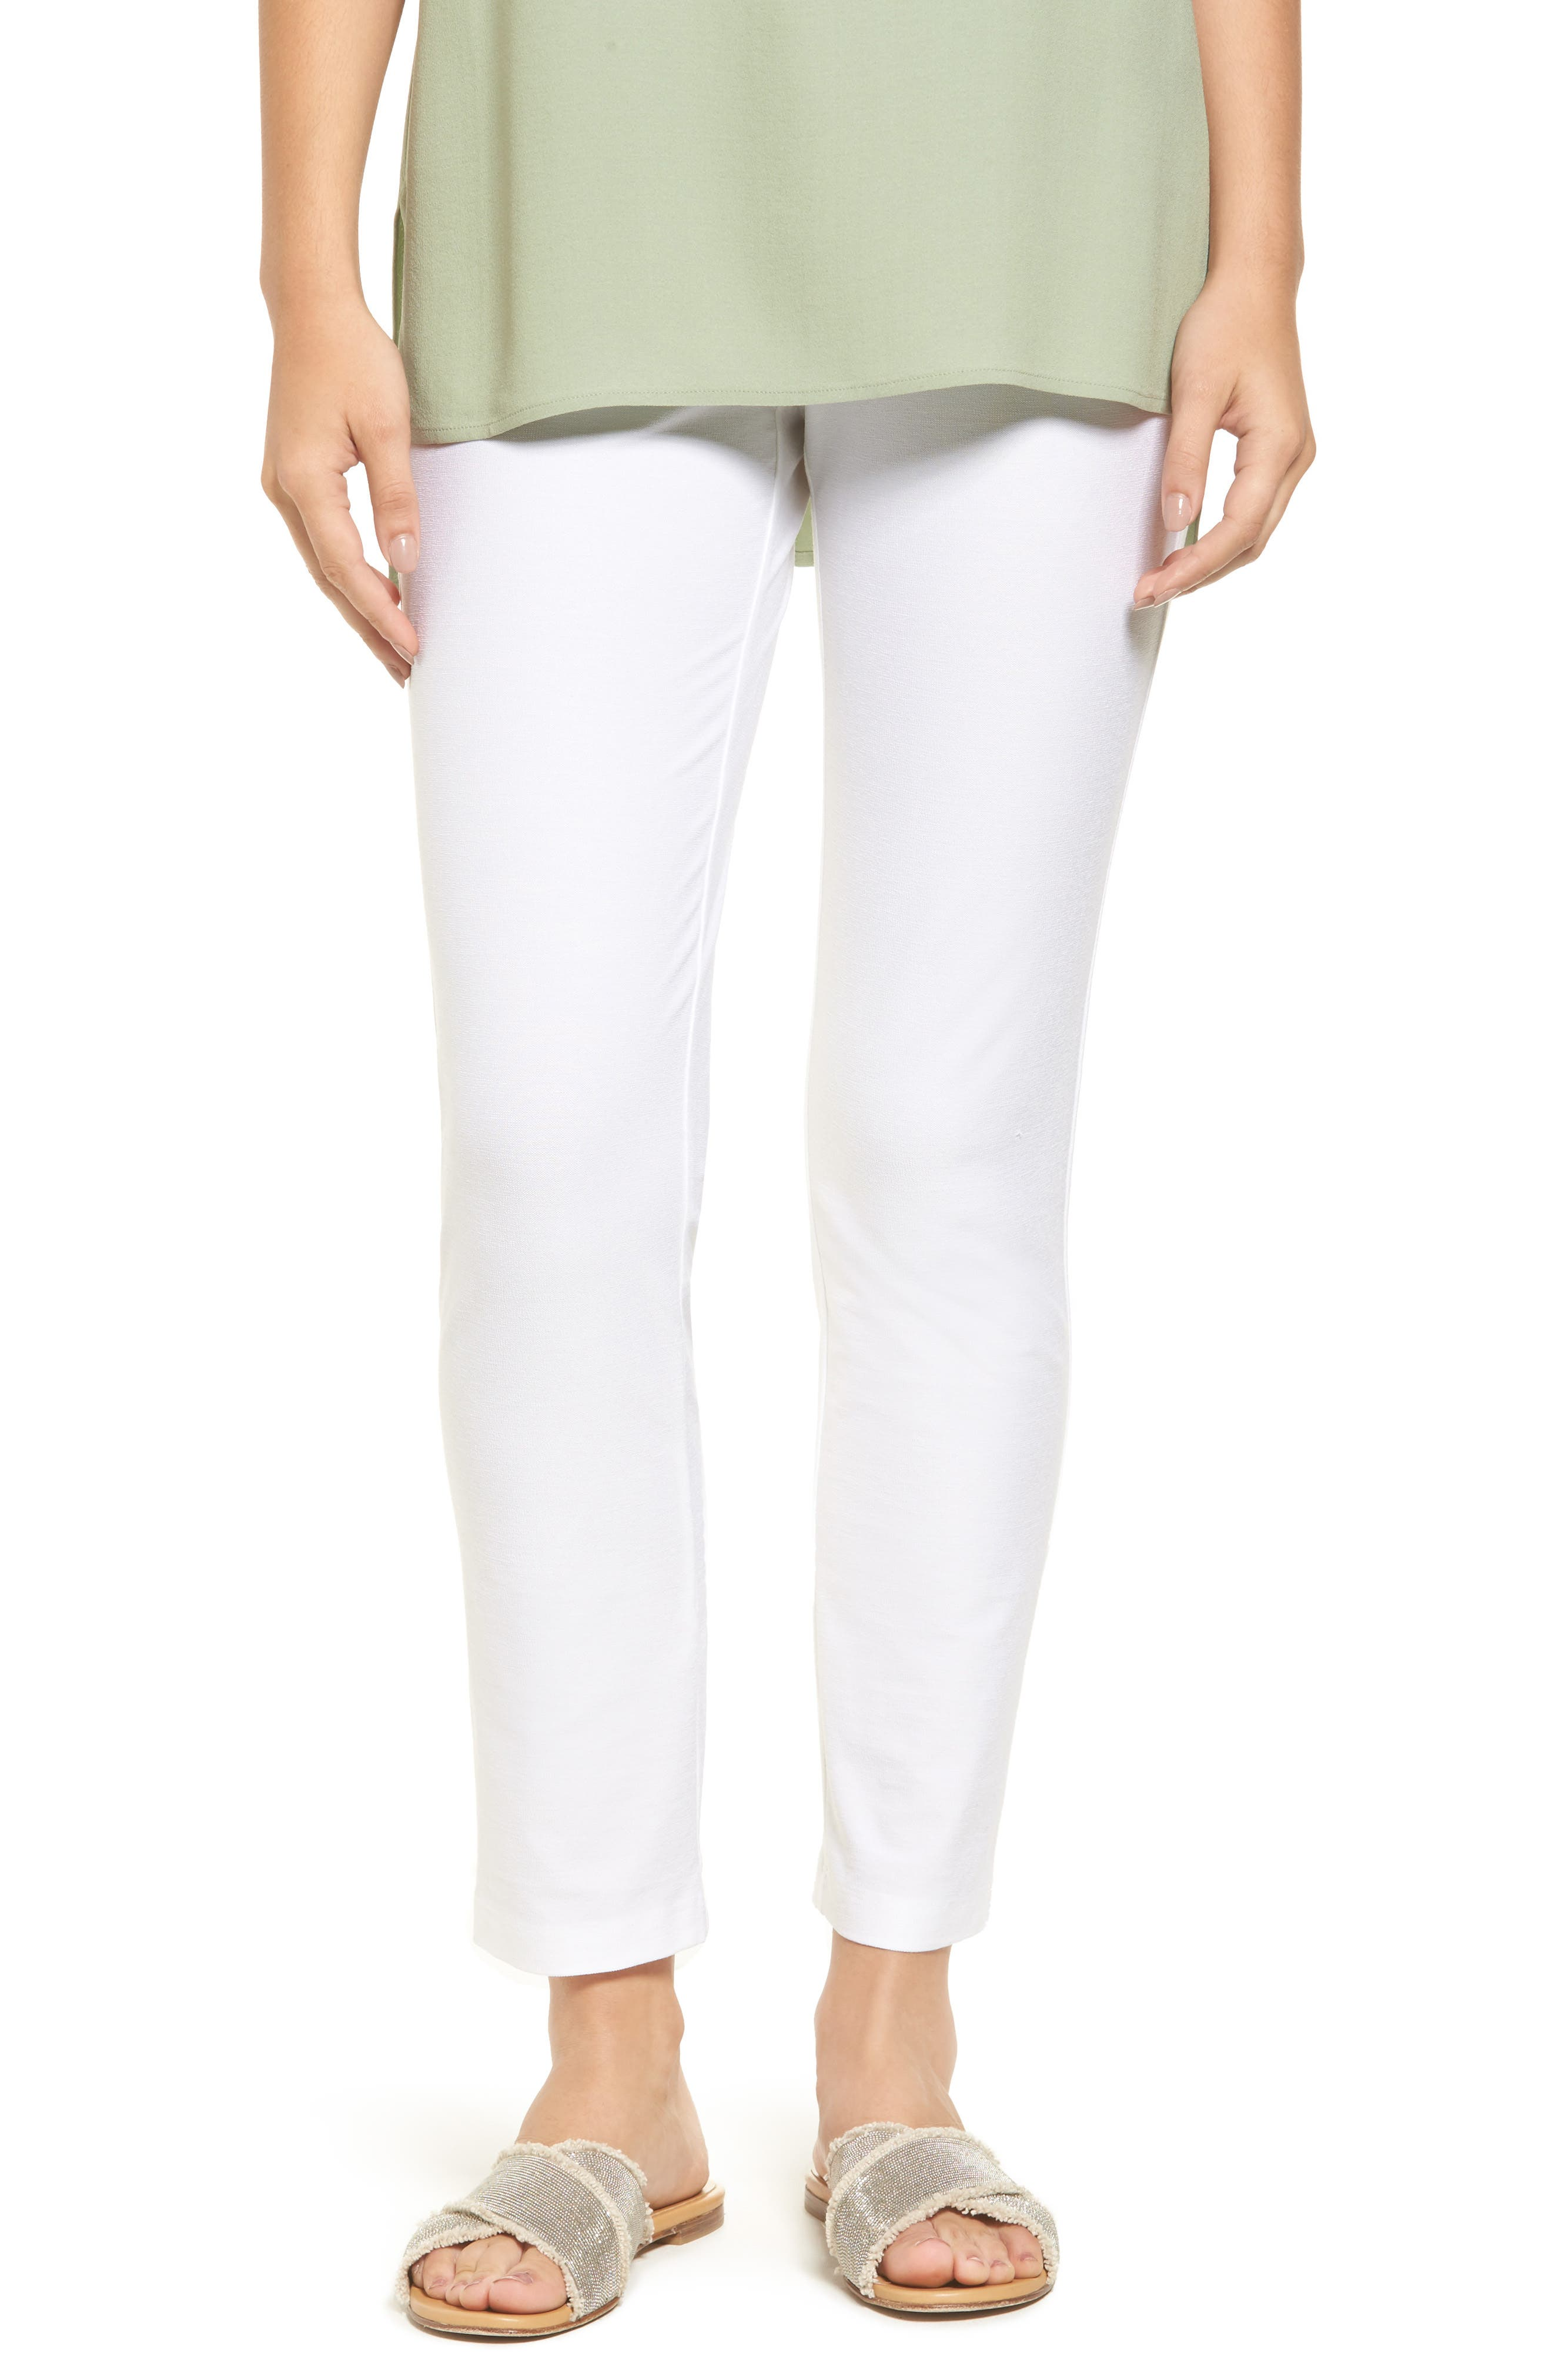 EILEEN FISHER, Stretch Crepe Slim Ankle Pants, Main thumbnail 1, color, WHITE